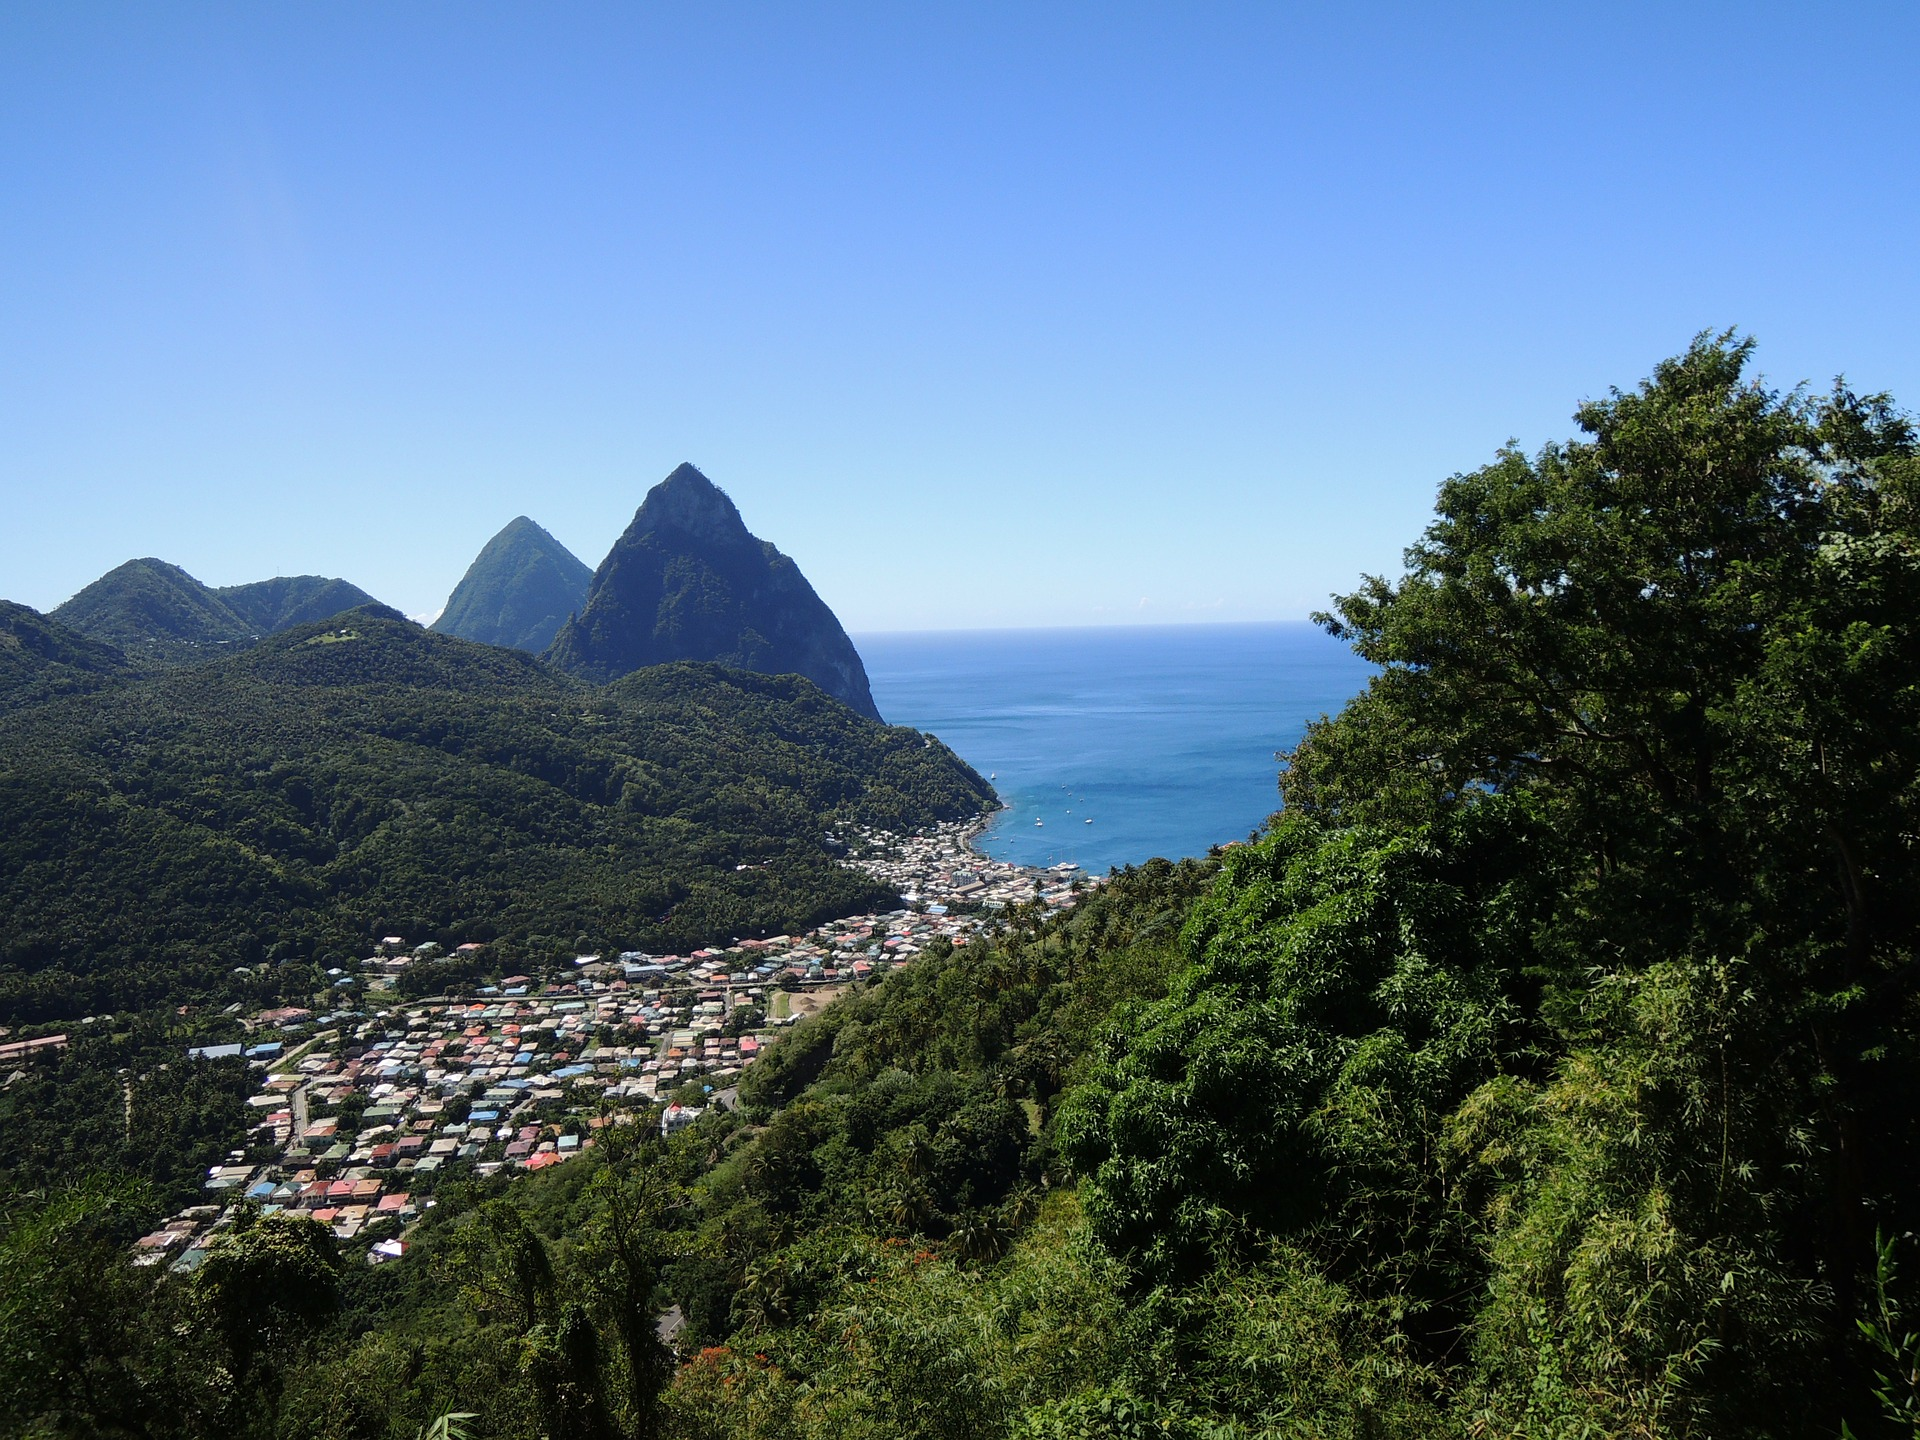 Travel blog: Indulge in Sumptuous Views and Tumbling Foliage at Bel Jou St Lucia